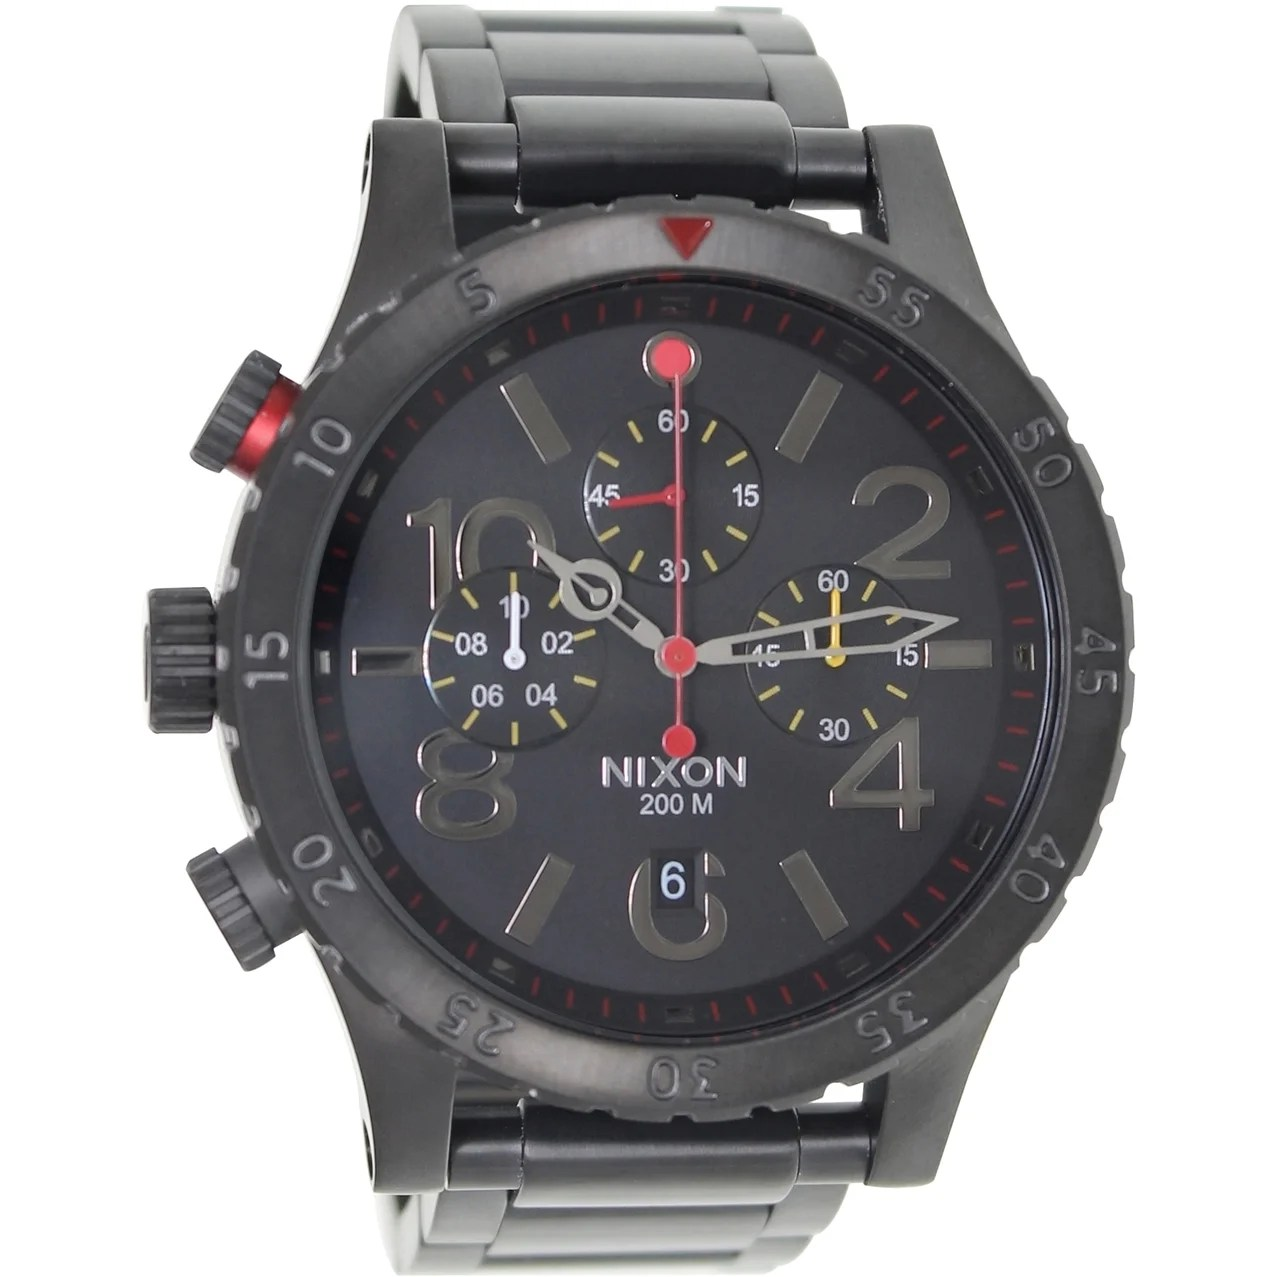 Nixon Watches Nixon Watches Shop Our Best Jewelry Watches Deals Online At